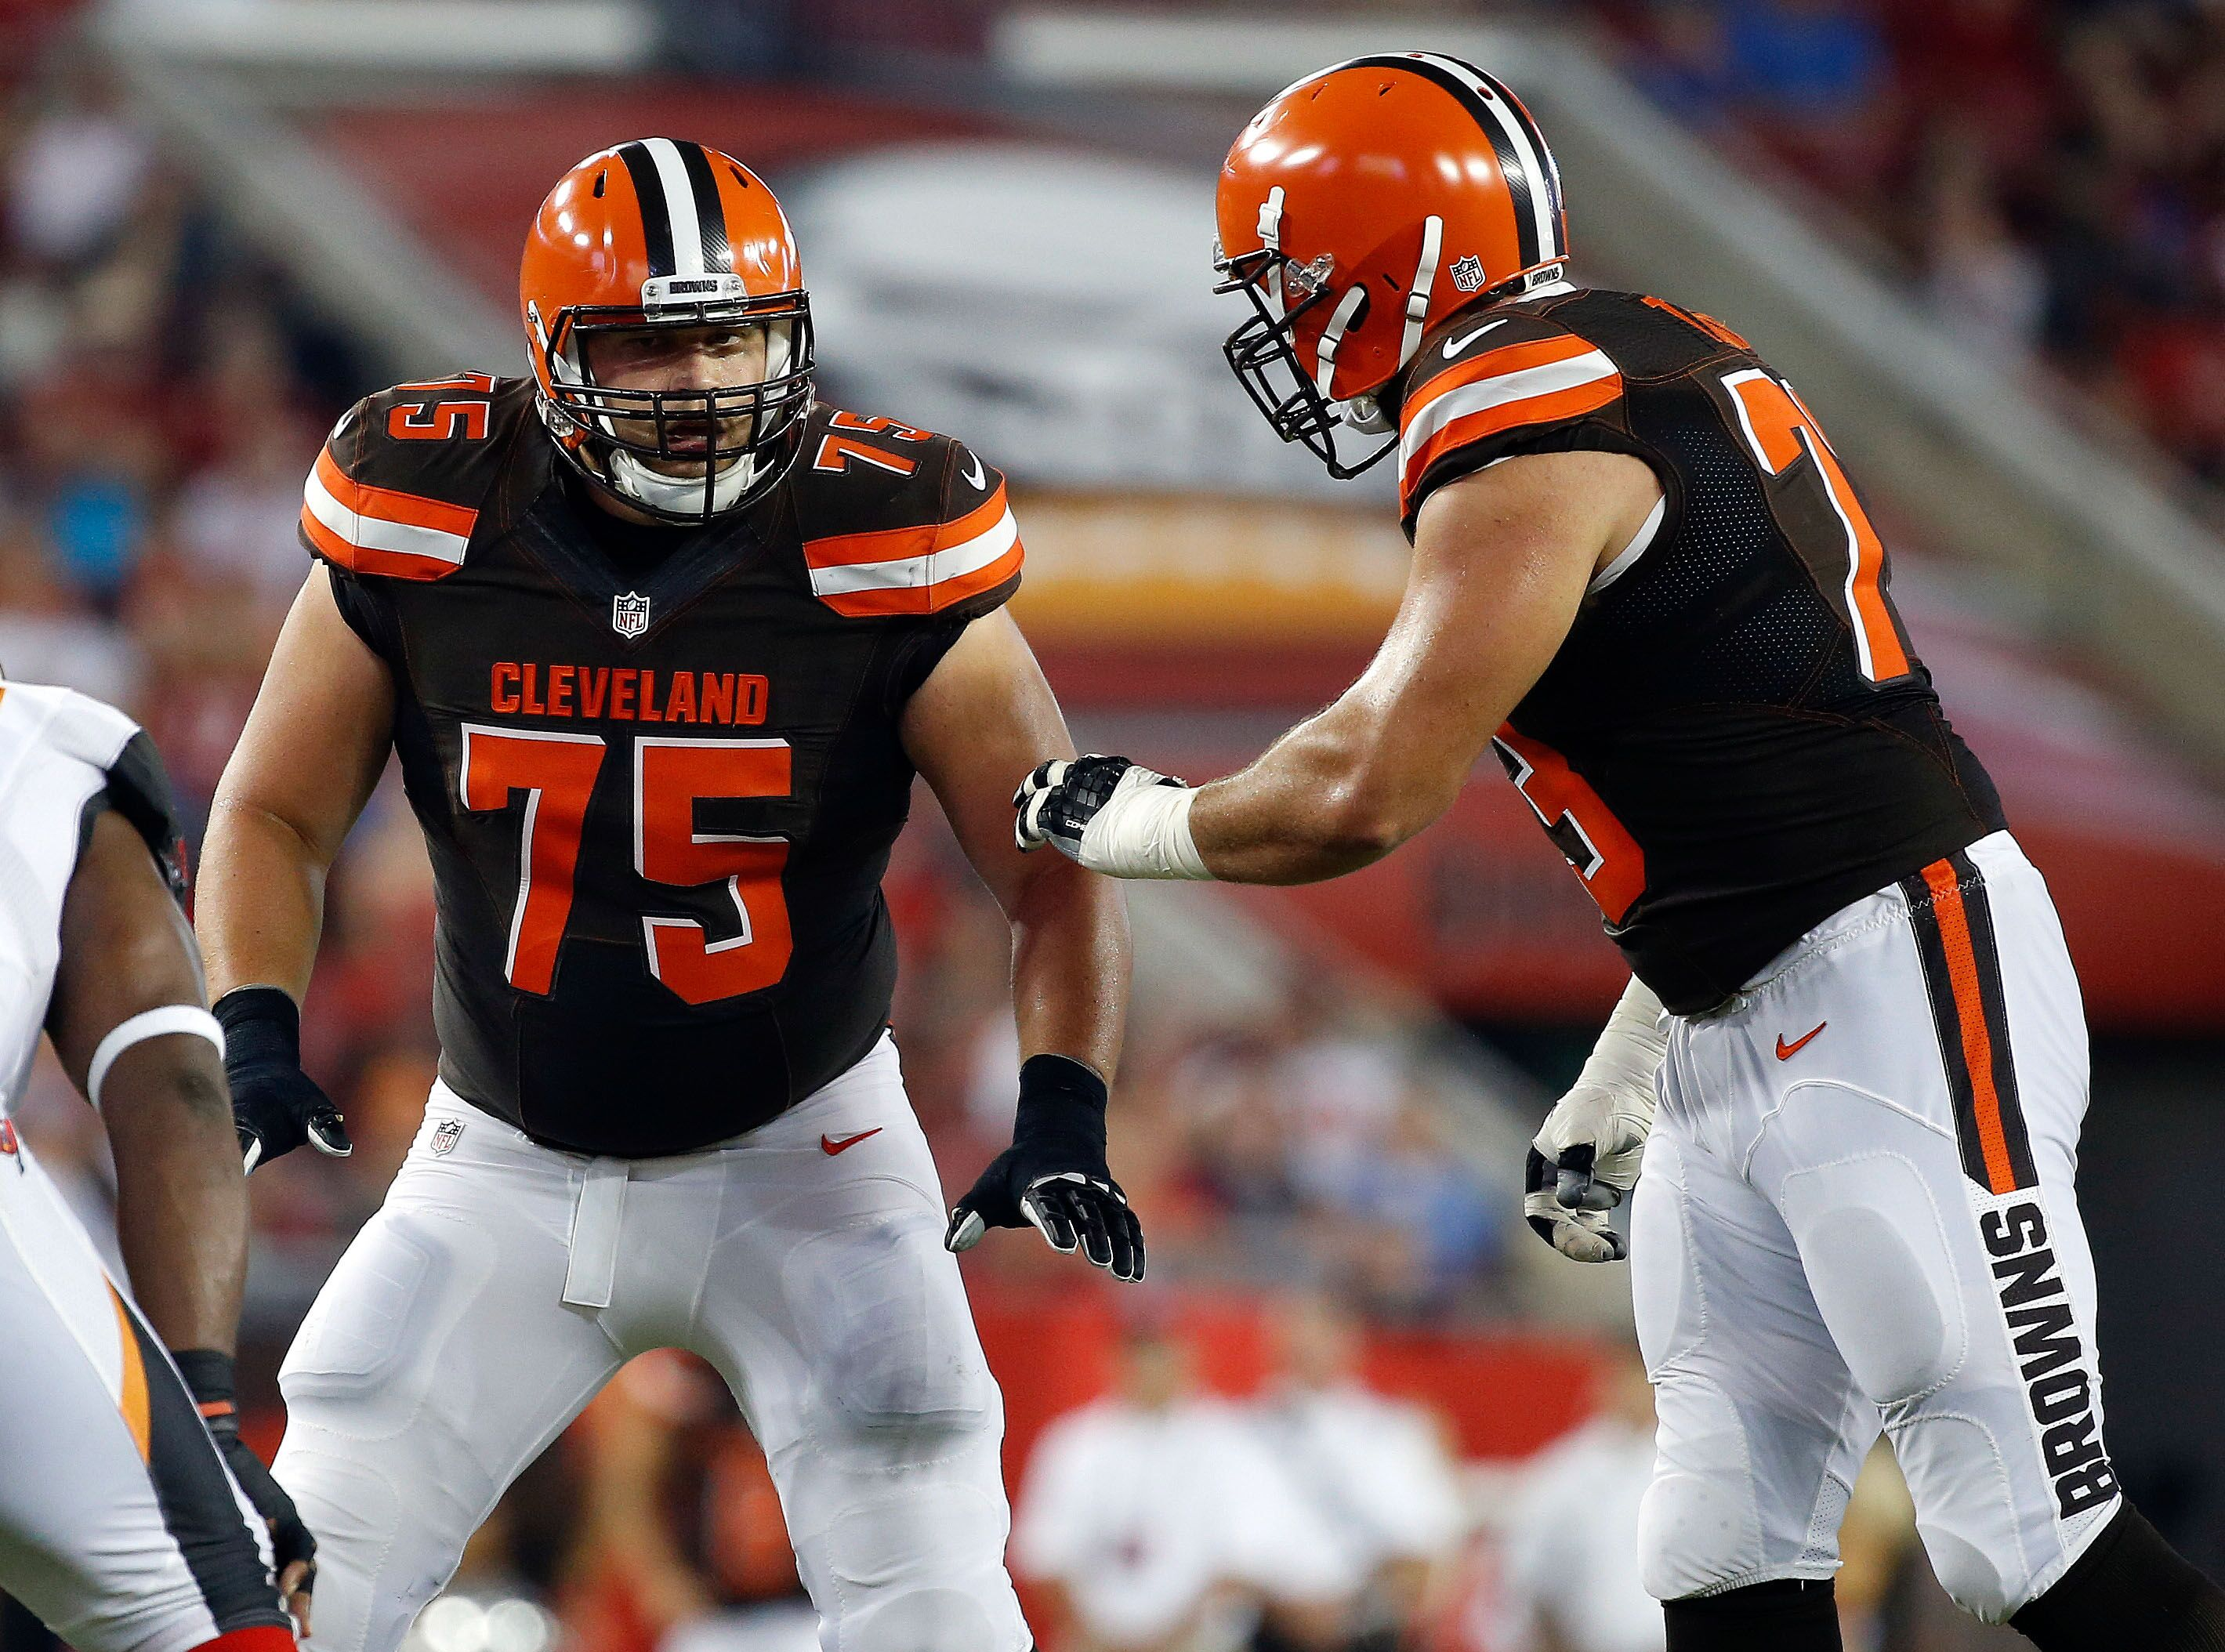 Do the Cleveland Browns truly have the best guards in the NFL